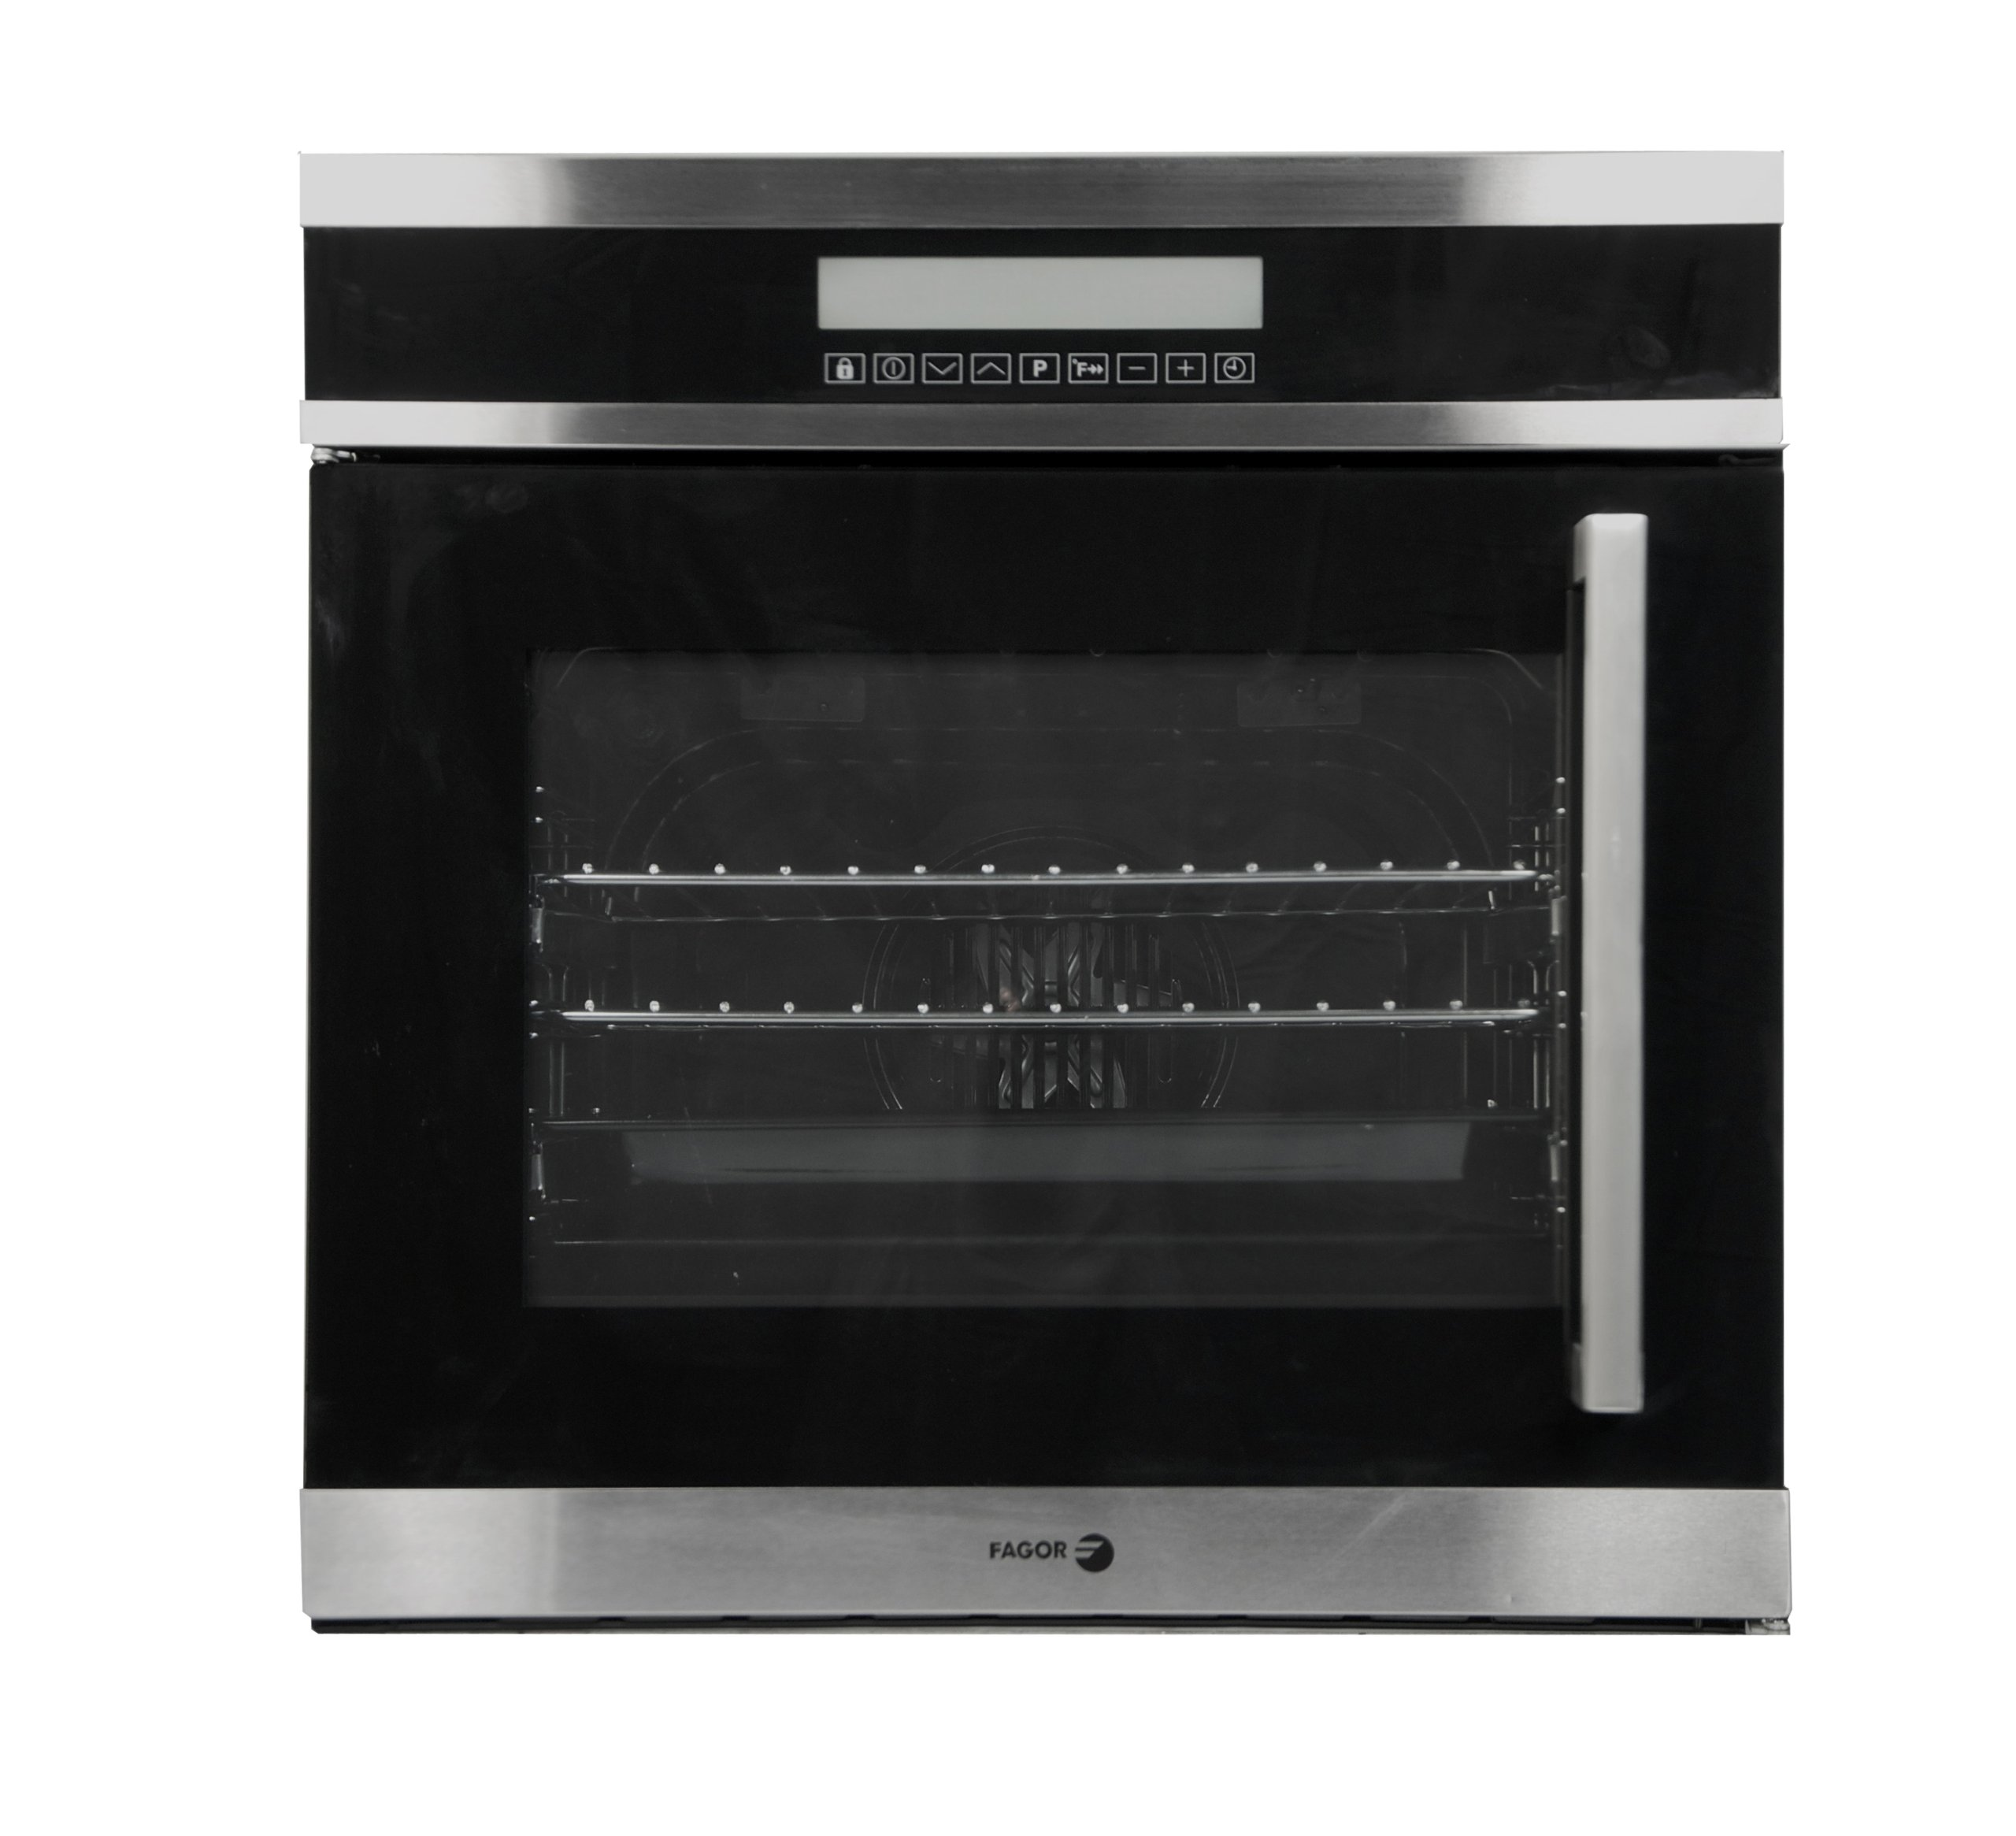 Fagor 6HA-200TLX Convection Wall Oven with Left Hand Touch Controls and 4 Cooking Programs, 24-Inch by Fagor